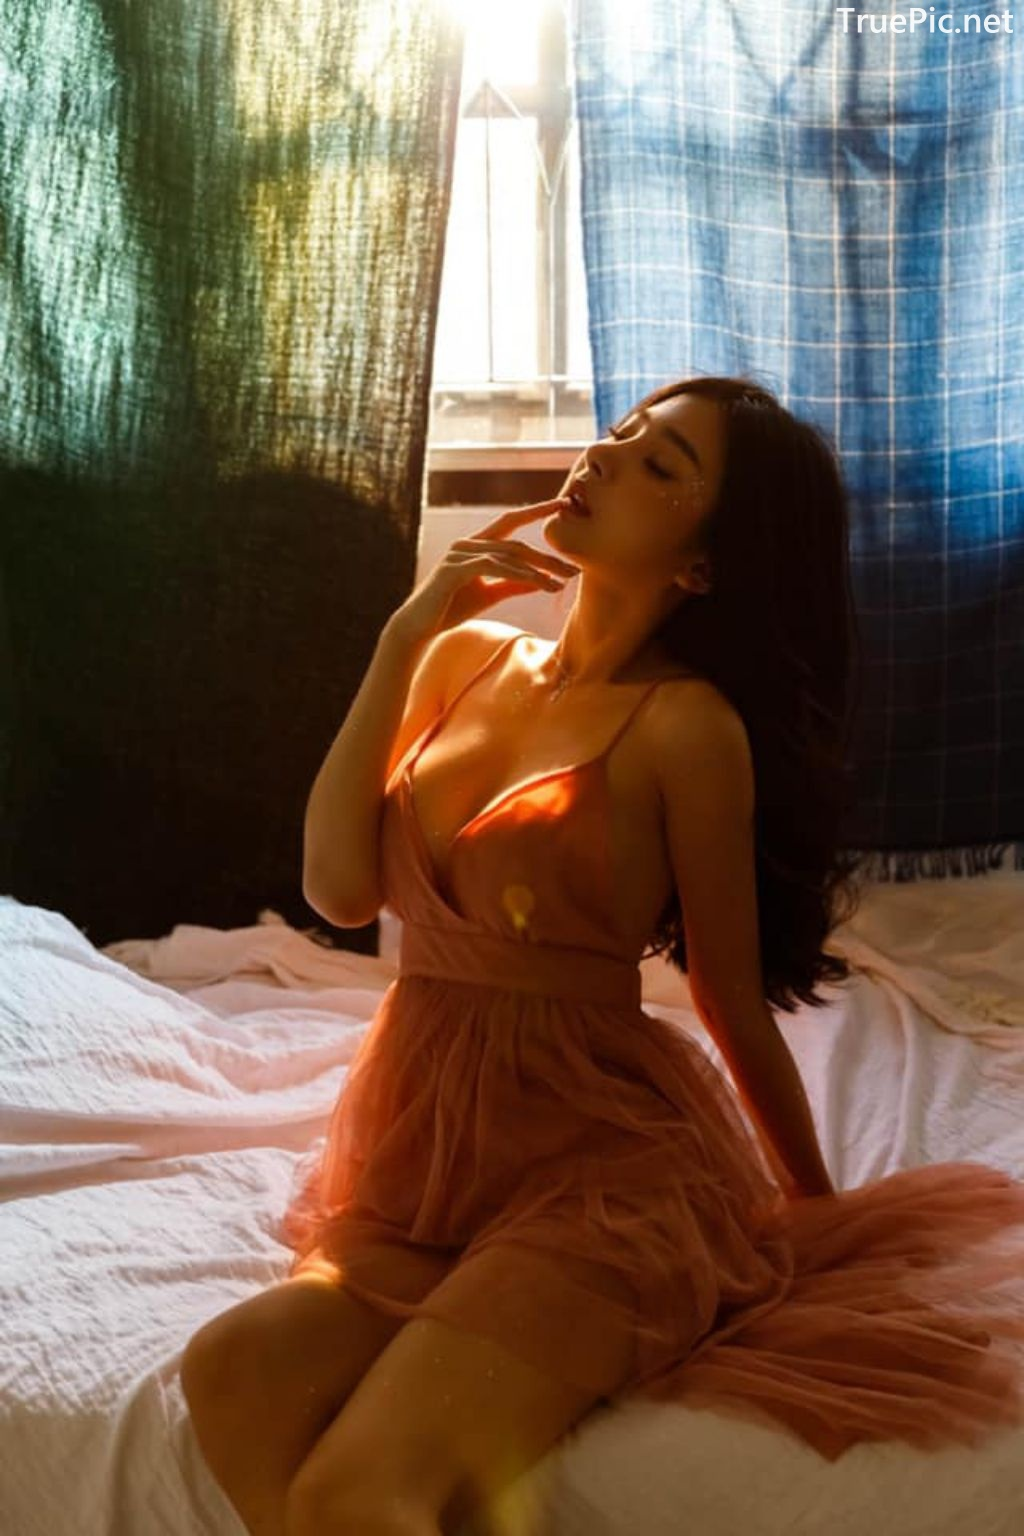 Image-Thailand-Sexy-Model-Pattamaporn-Keawkum-Morning-Sunlight-TruePic.net- Picture-7